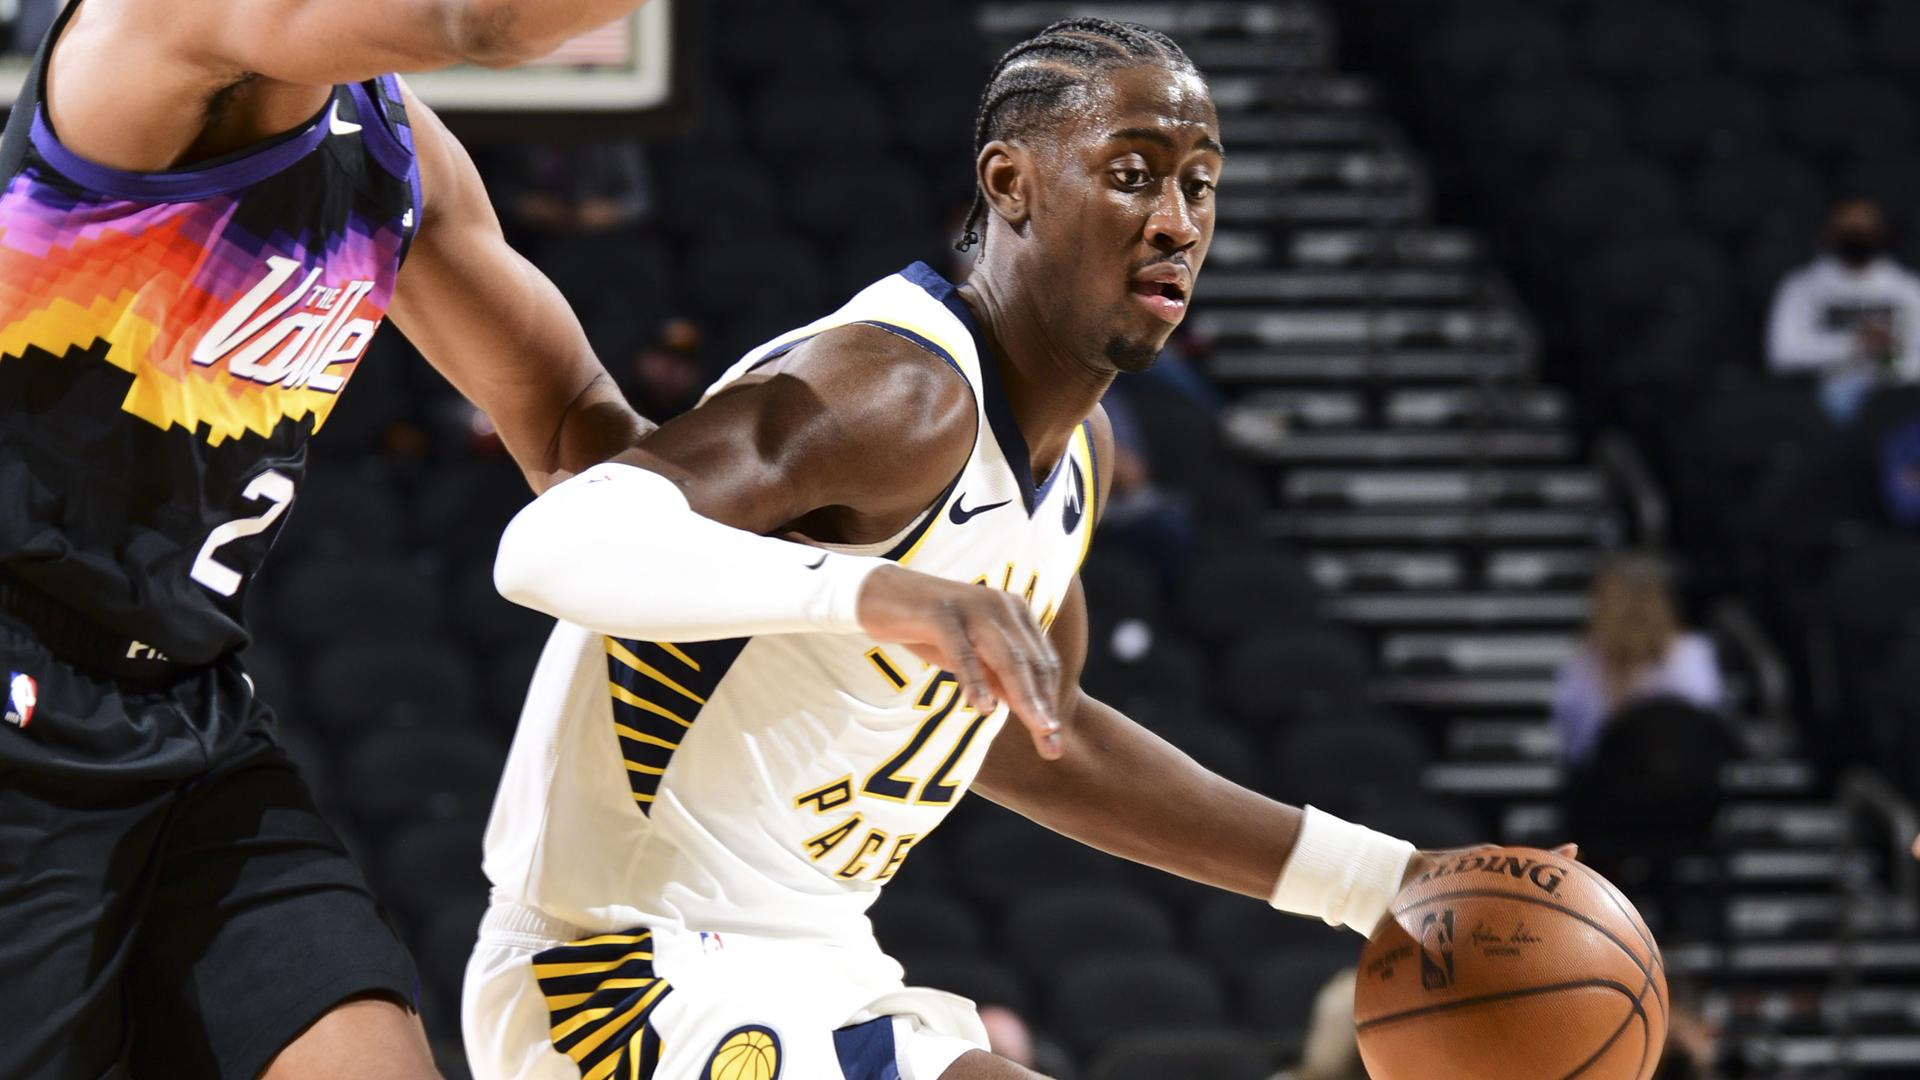 Caris LeVert scores 13 points in return to action